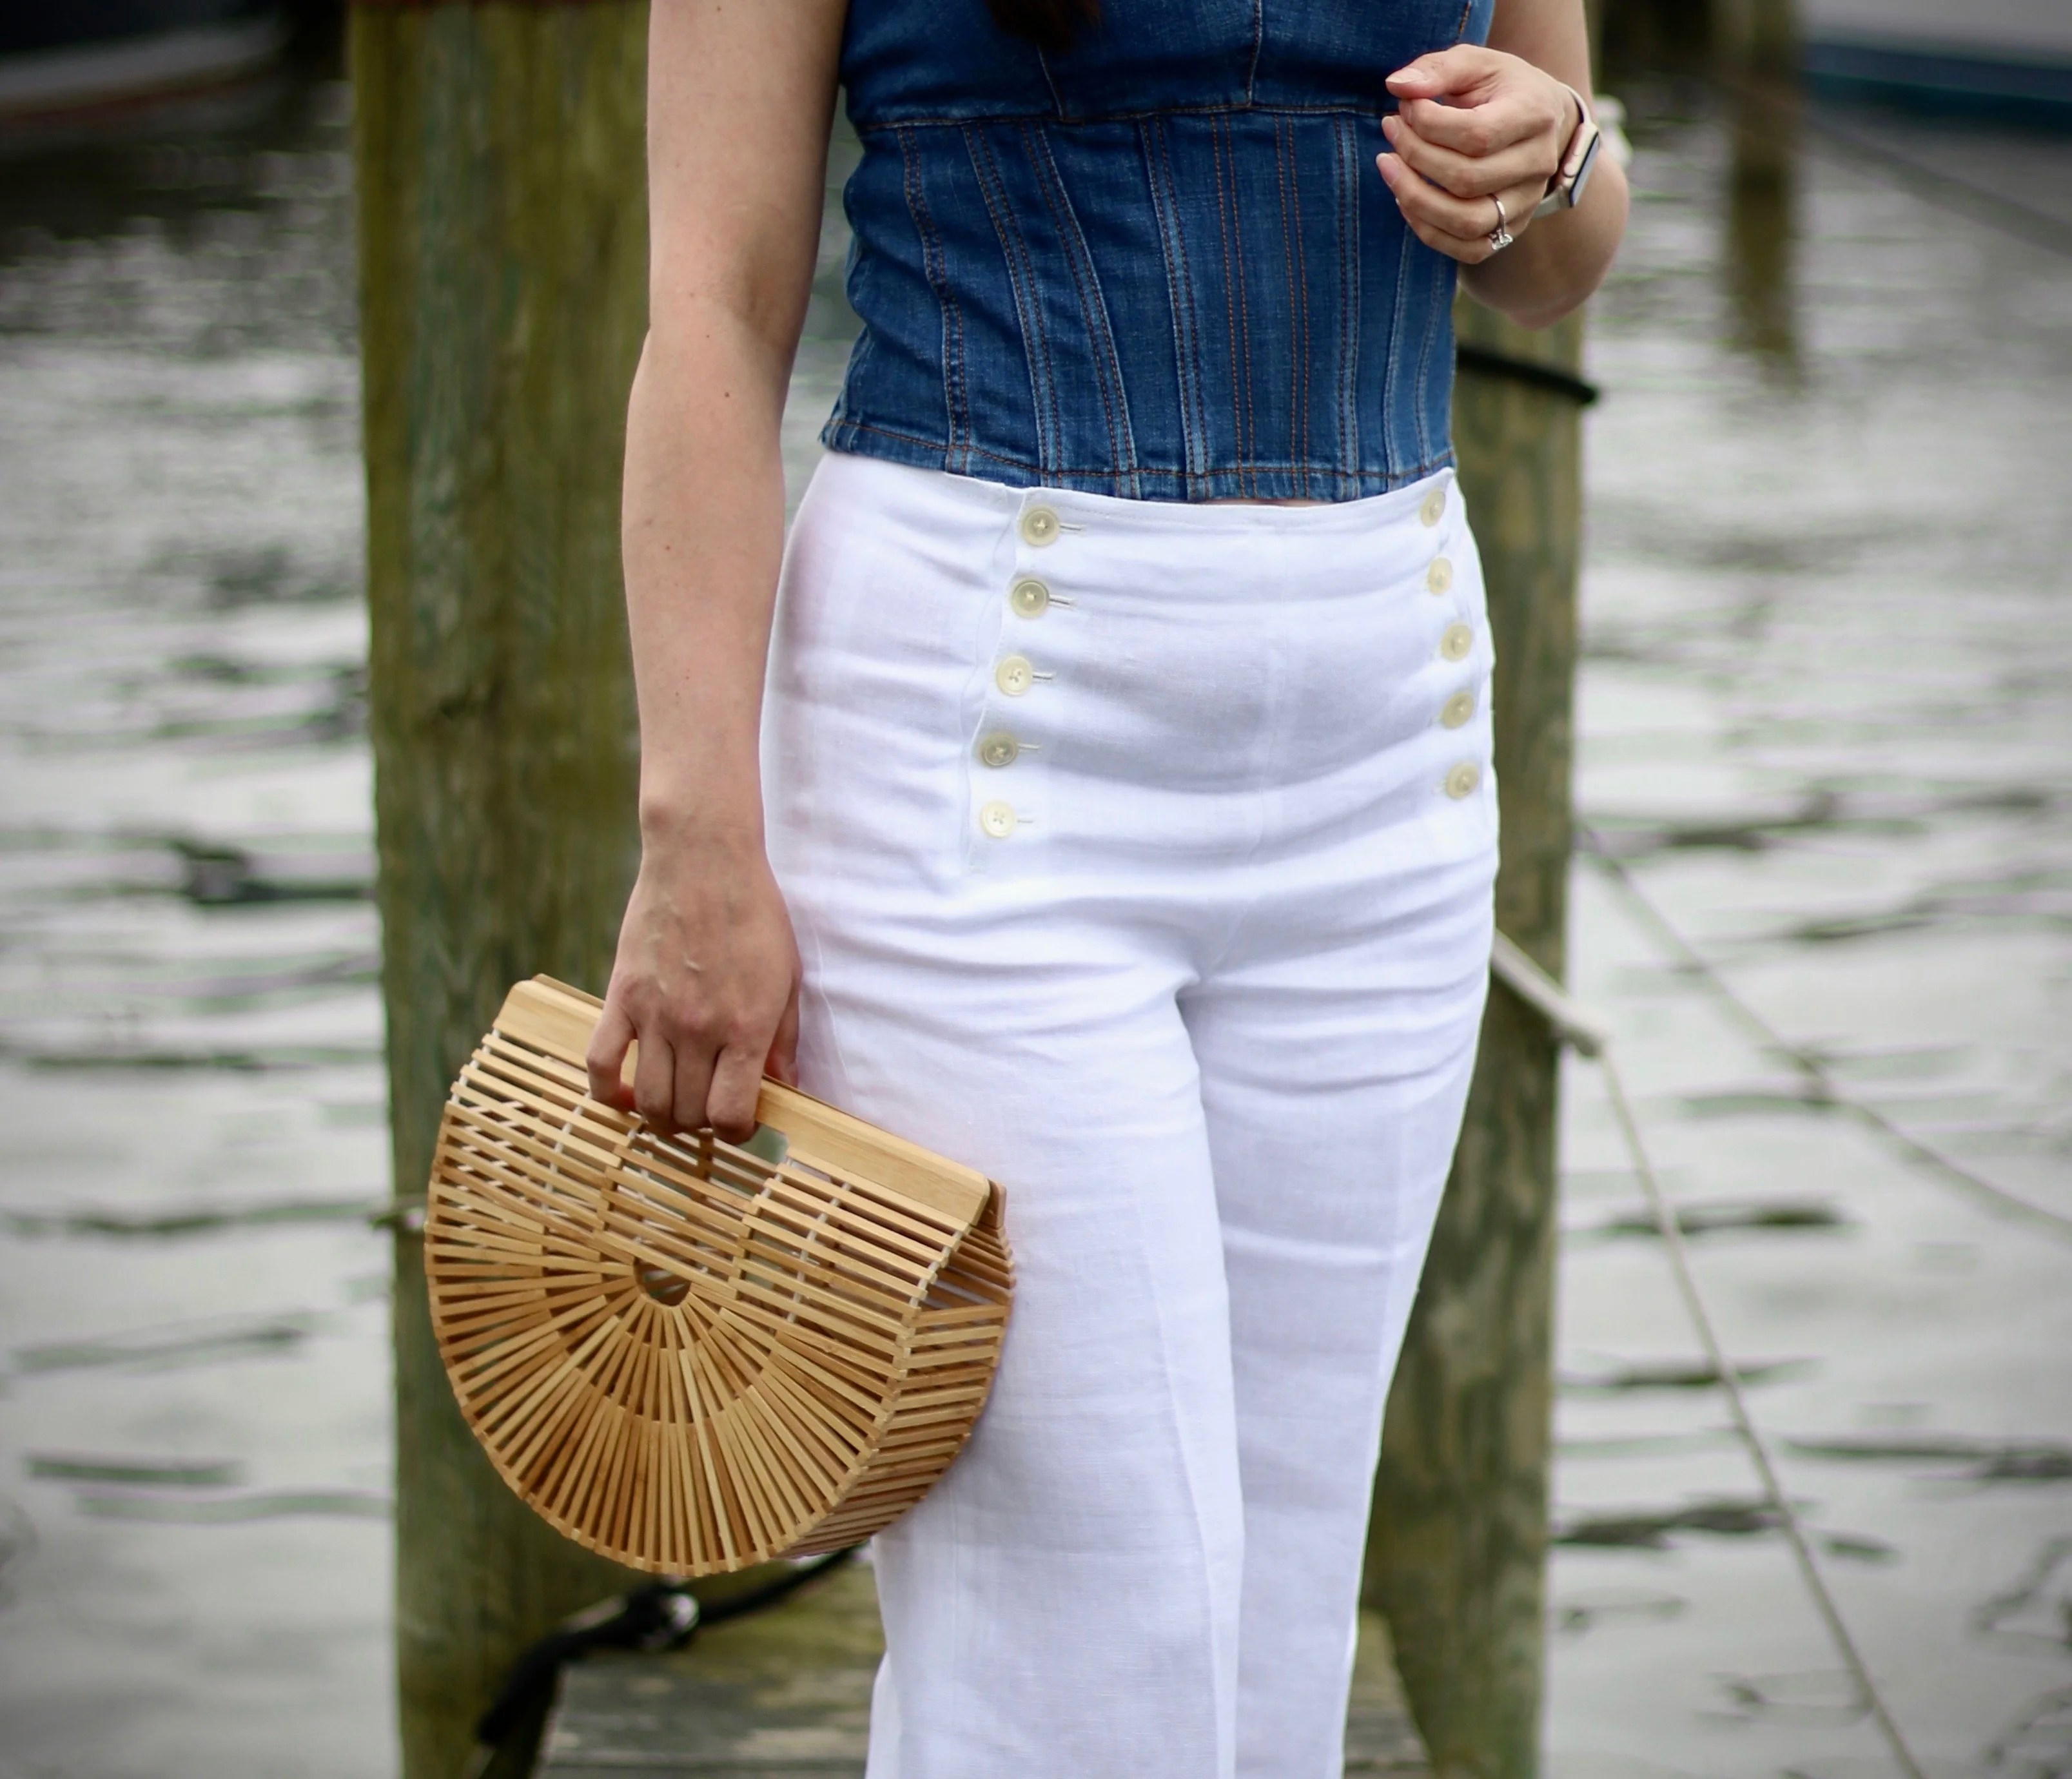 J.Crew Linen Sailor Pants, Denim Corset Top, Cult Gaia Arc Bag